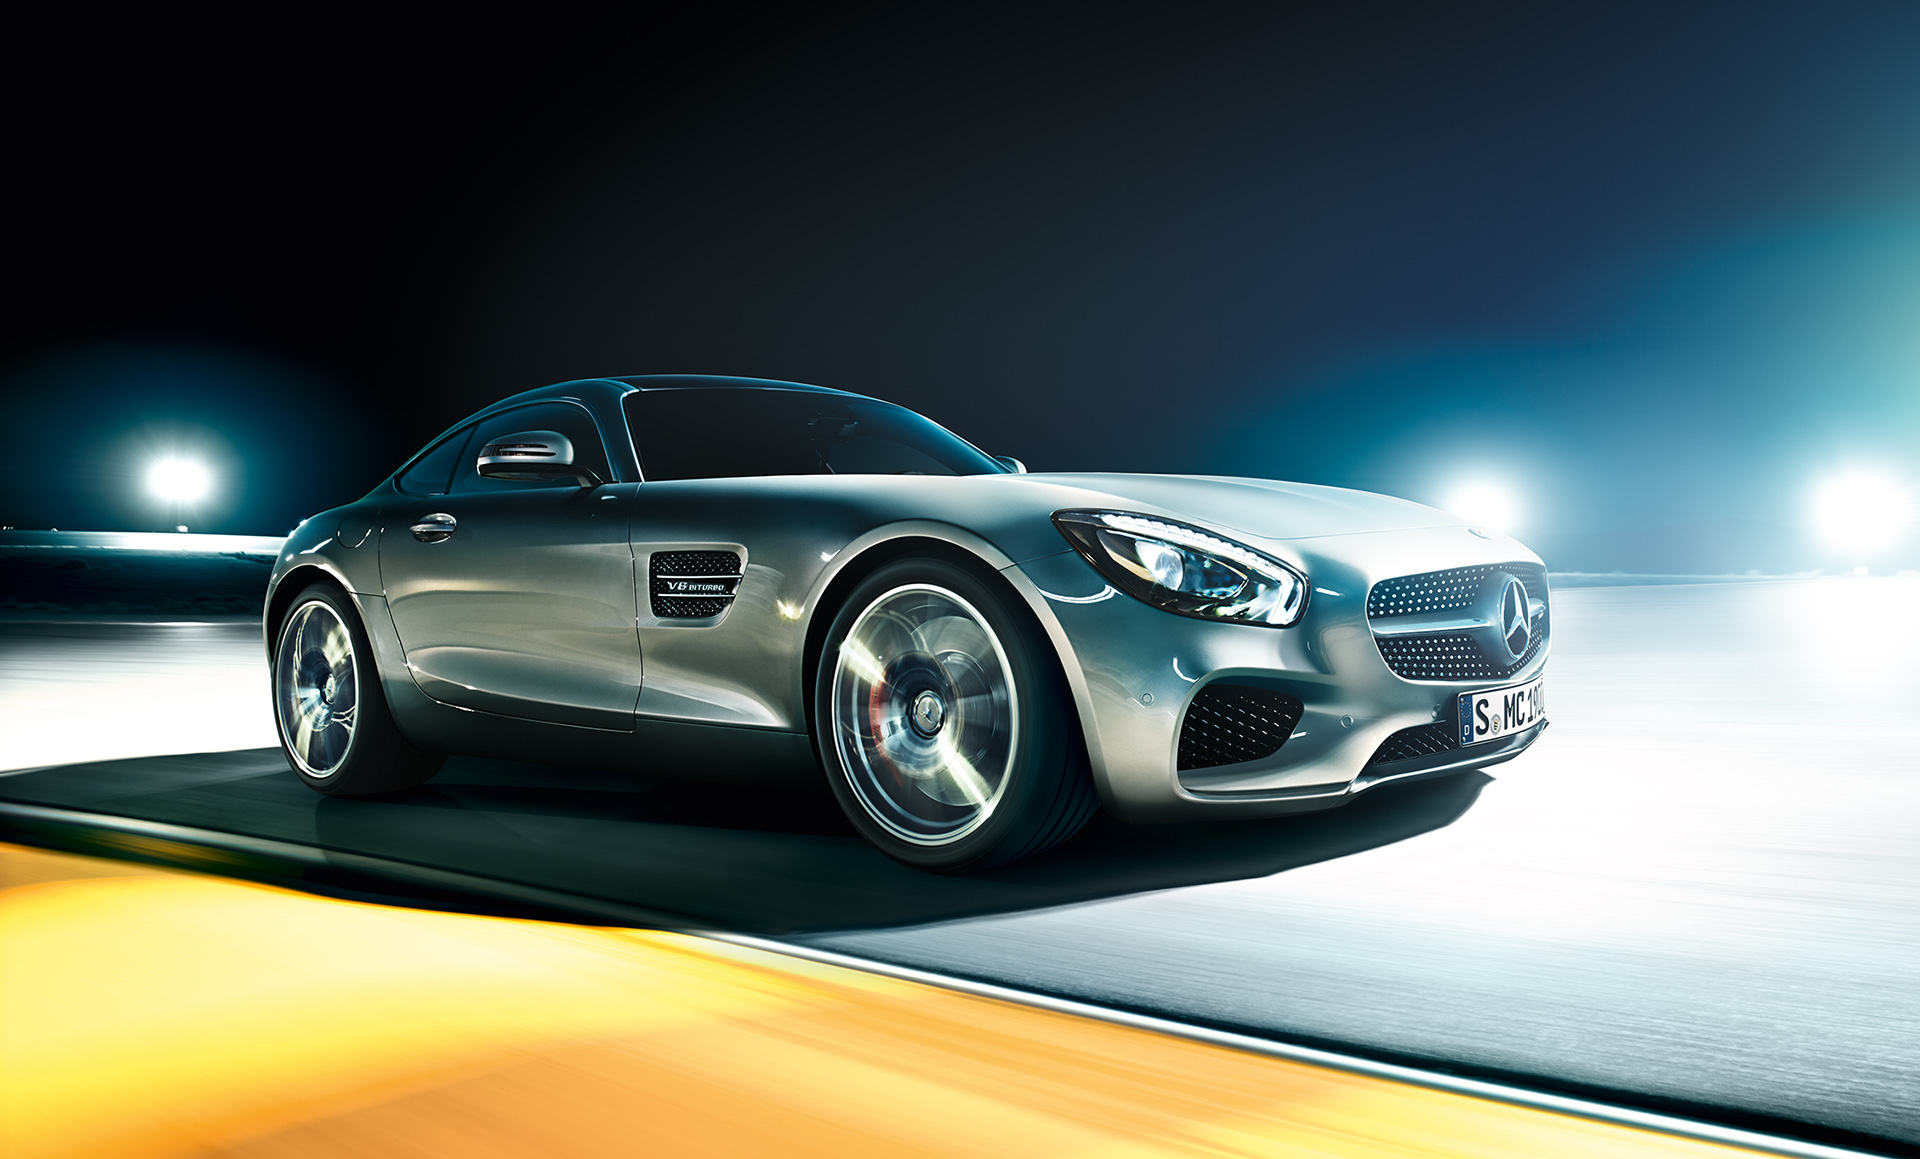 Amg Gt Mercedes Amg Gt Black Series Confirmed Photos Caradvice